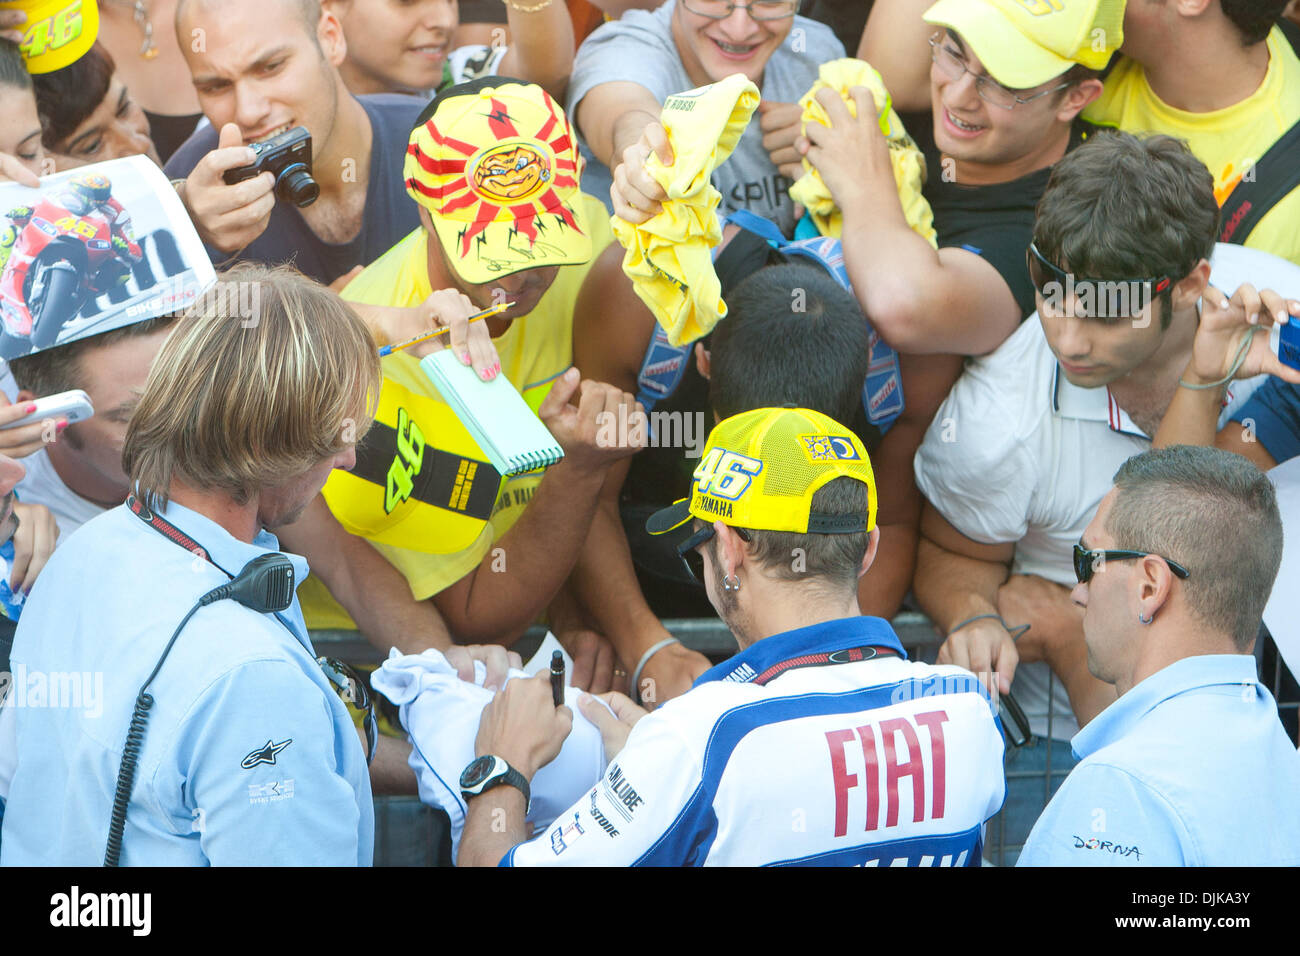 Sep. 03, 2010 - Misano Adriatico, Italy - Yamaha rider Valentino Rossi (#46) signing a utograph to a huge crowd of fans during the pit walk on friday at the San Marino GP in Misano Adriatico, Italy. (Credit Image: © Andrea Ranalli/Southcreek Global/ZUMApress.com) - Stock Image